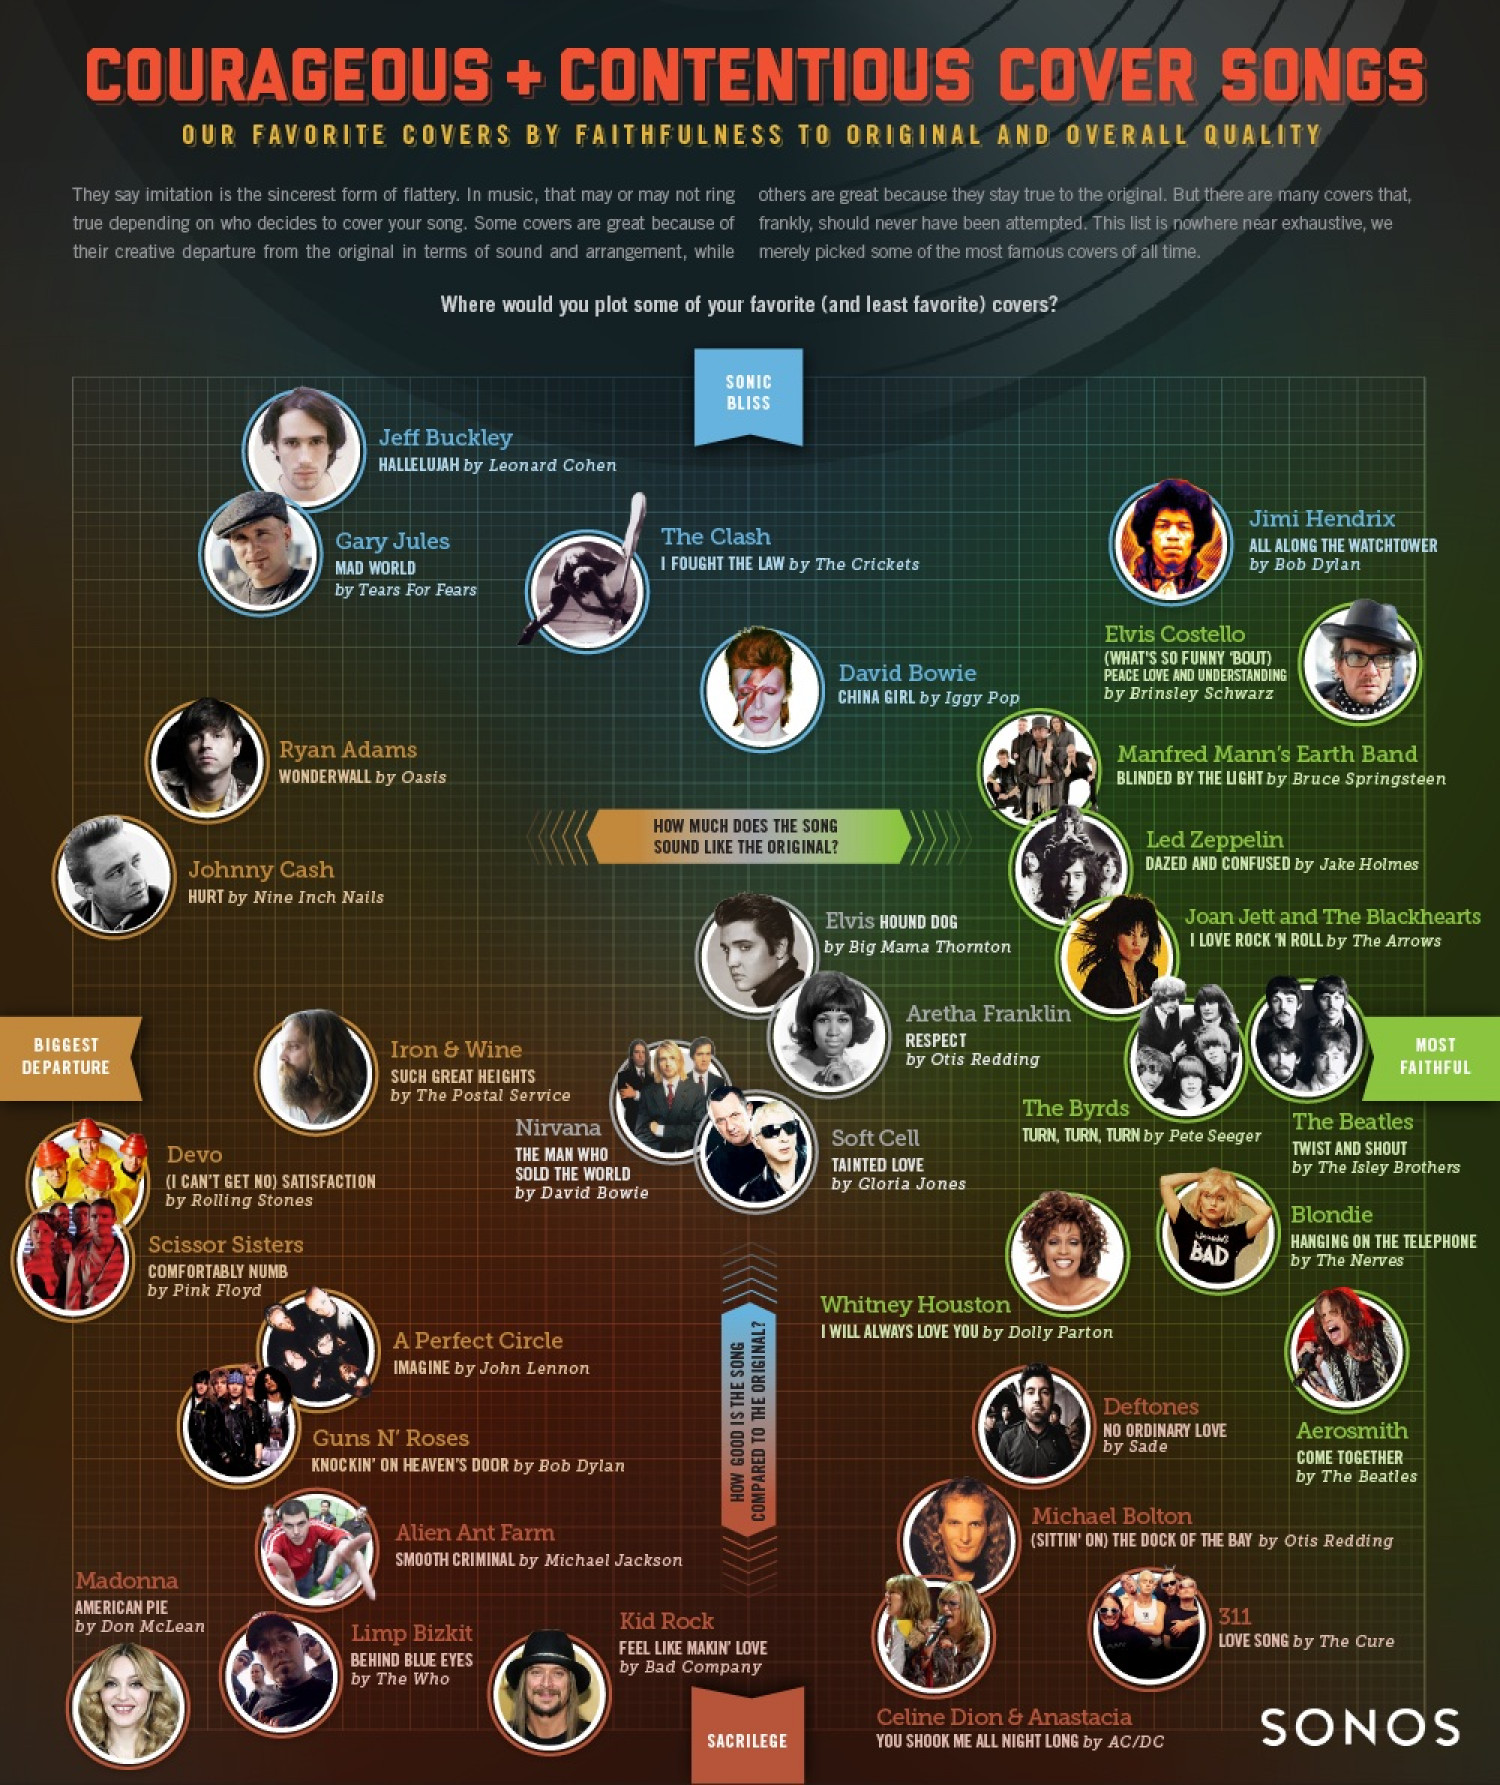 Courageous + Contentious Cover Songs Infographic